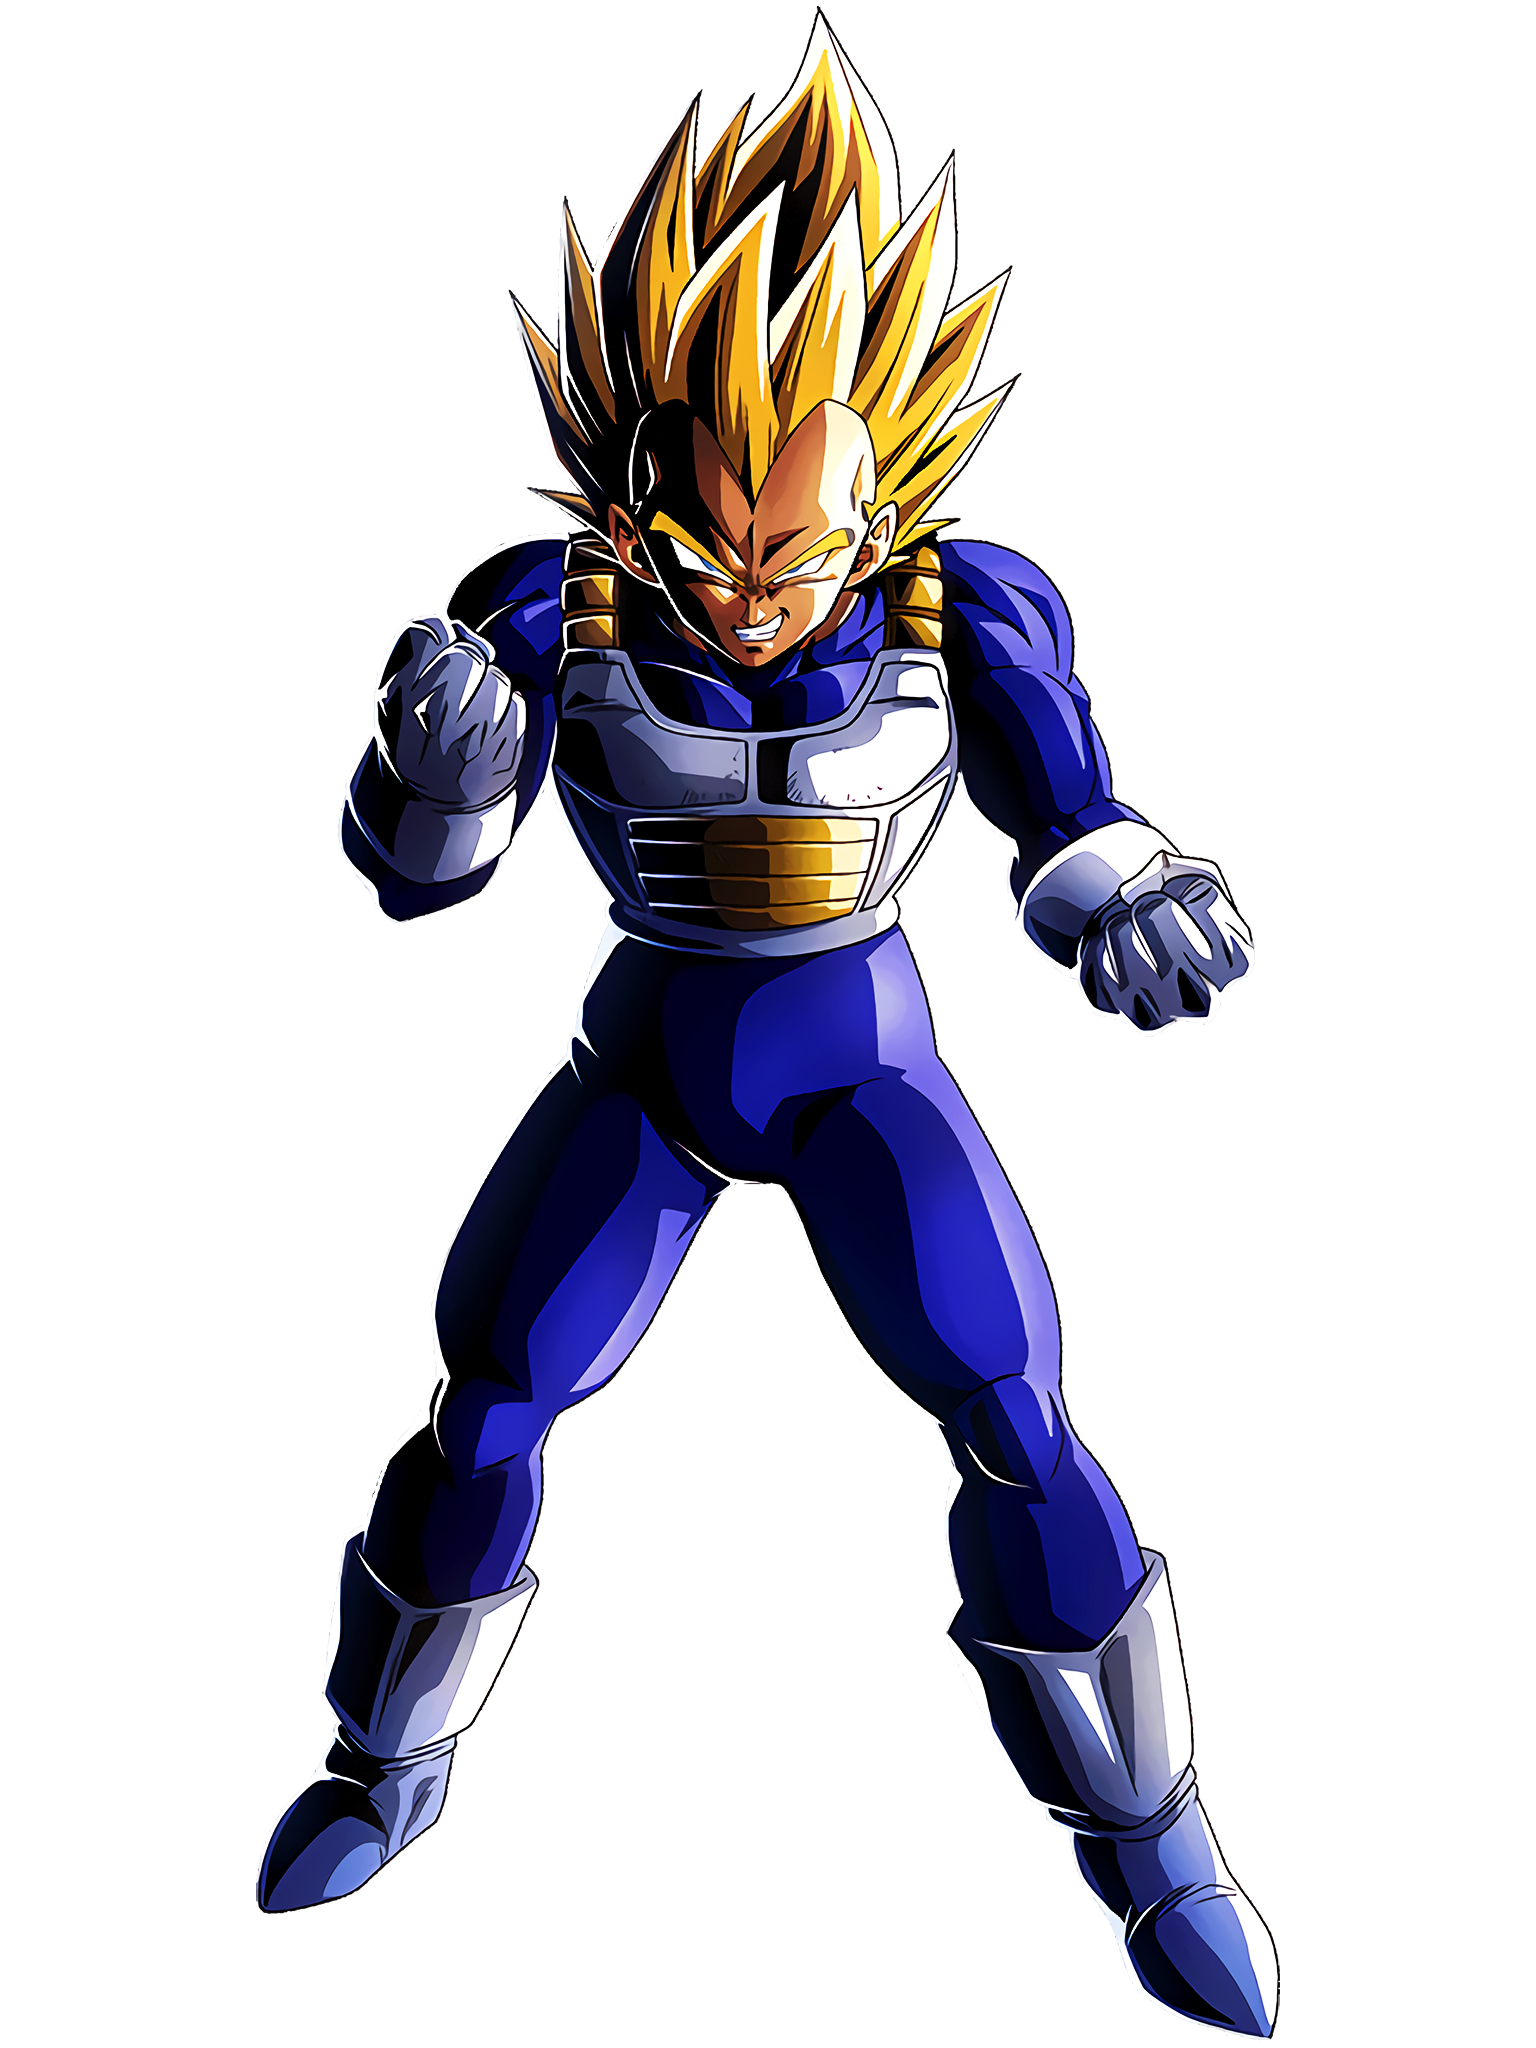 Blood of a Super Saiyan Awakens Super Saiyan Vegeta Render (Dragon Ball Z Dokkan Battle) .png